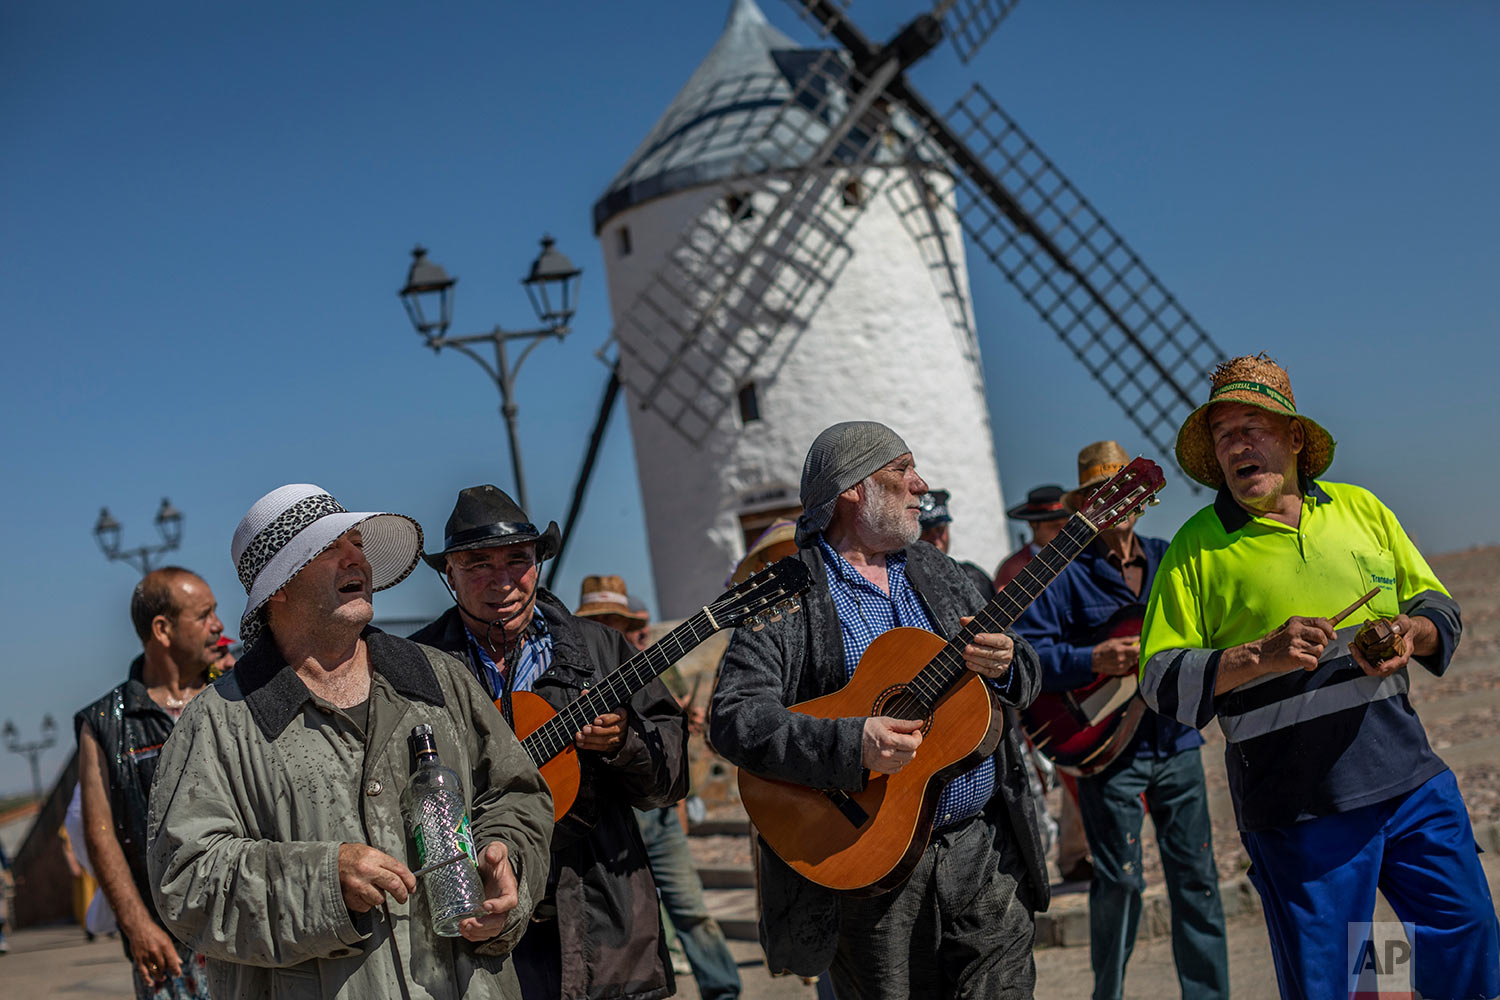 "In this Friday, June 21, 2019 photo, members of the ""Hermandad del santísimo sacramento pecados y danzantes"" brotherhood sing satirical songs during a procession as part of Corpus Christi celebrations in Camunas, central Spain. (AP Photo/Bernat Armangue)"